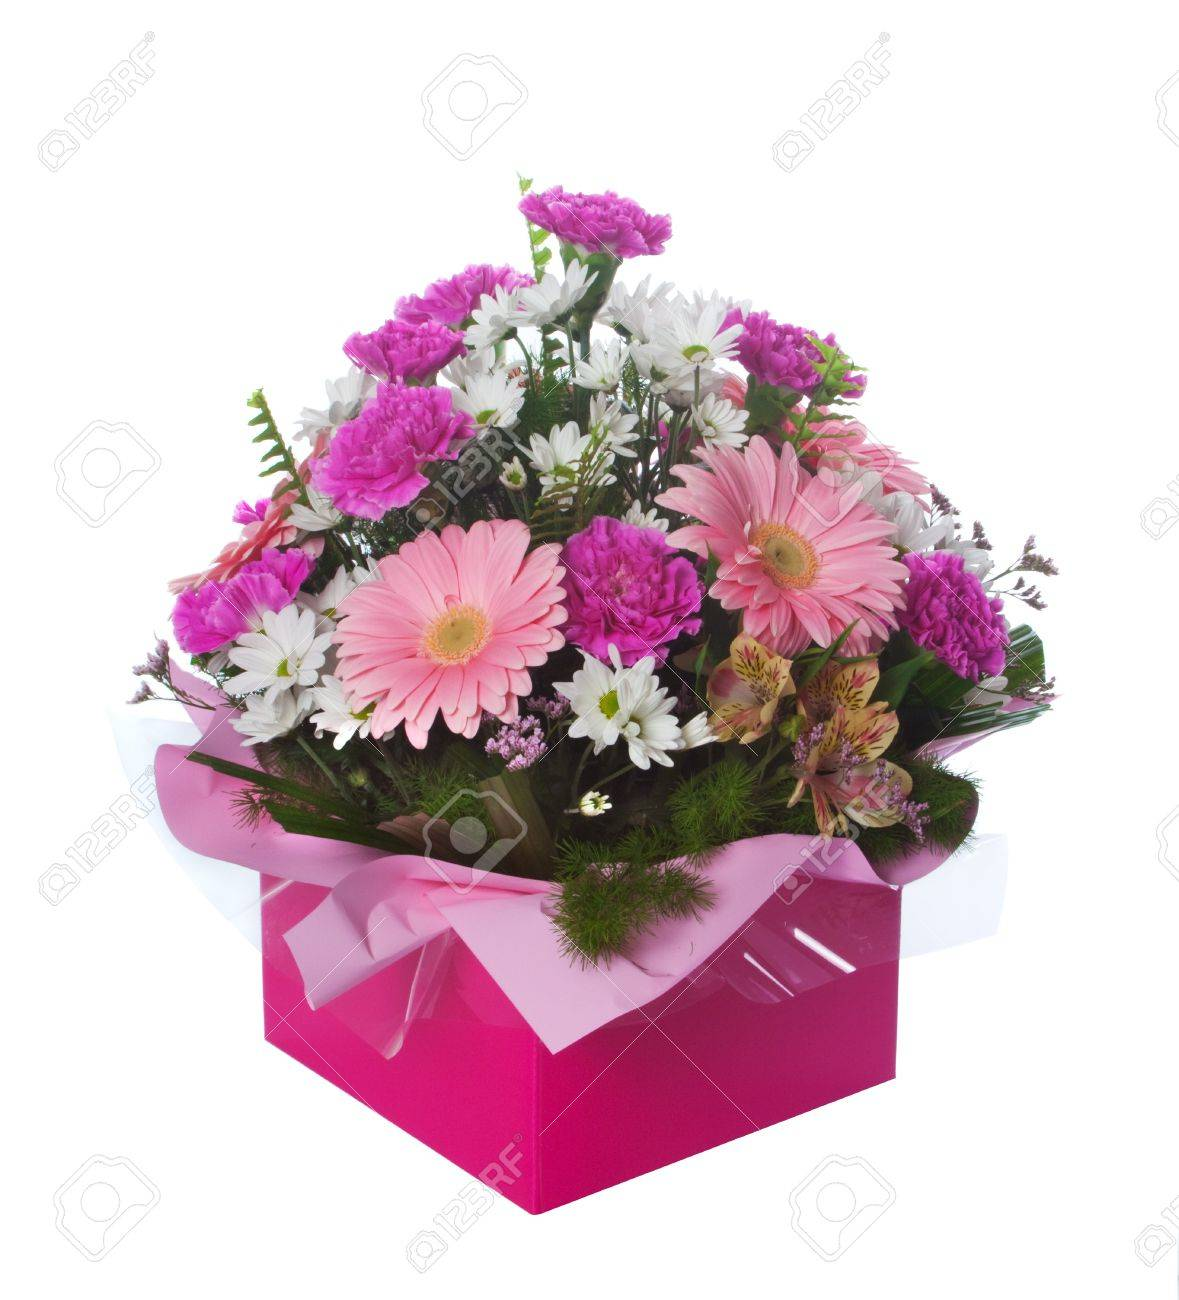 Beautiful pink themed floral arrangement in presentation box isolated over white background. Stock Photo - 7162804